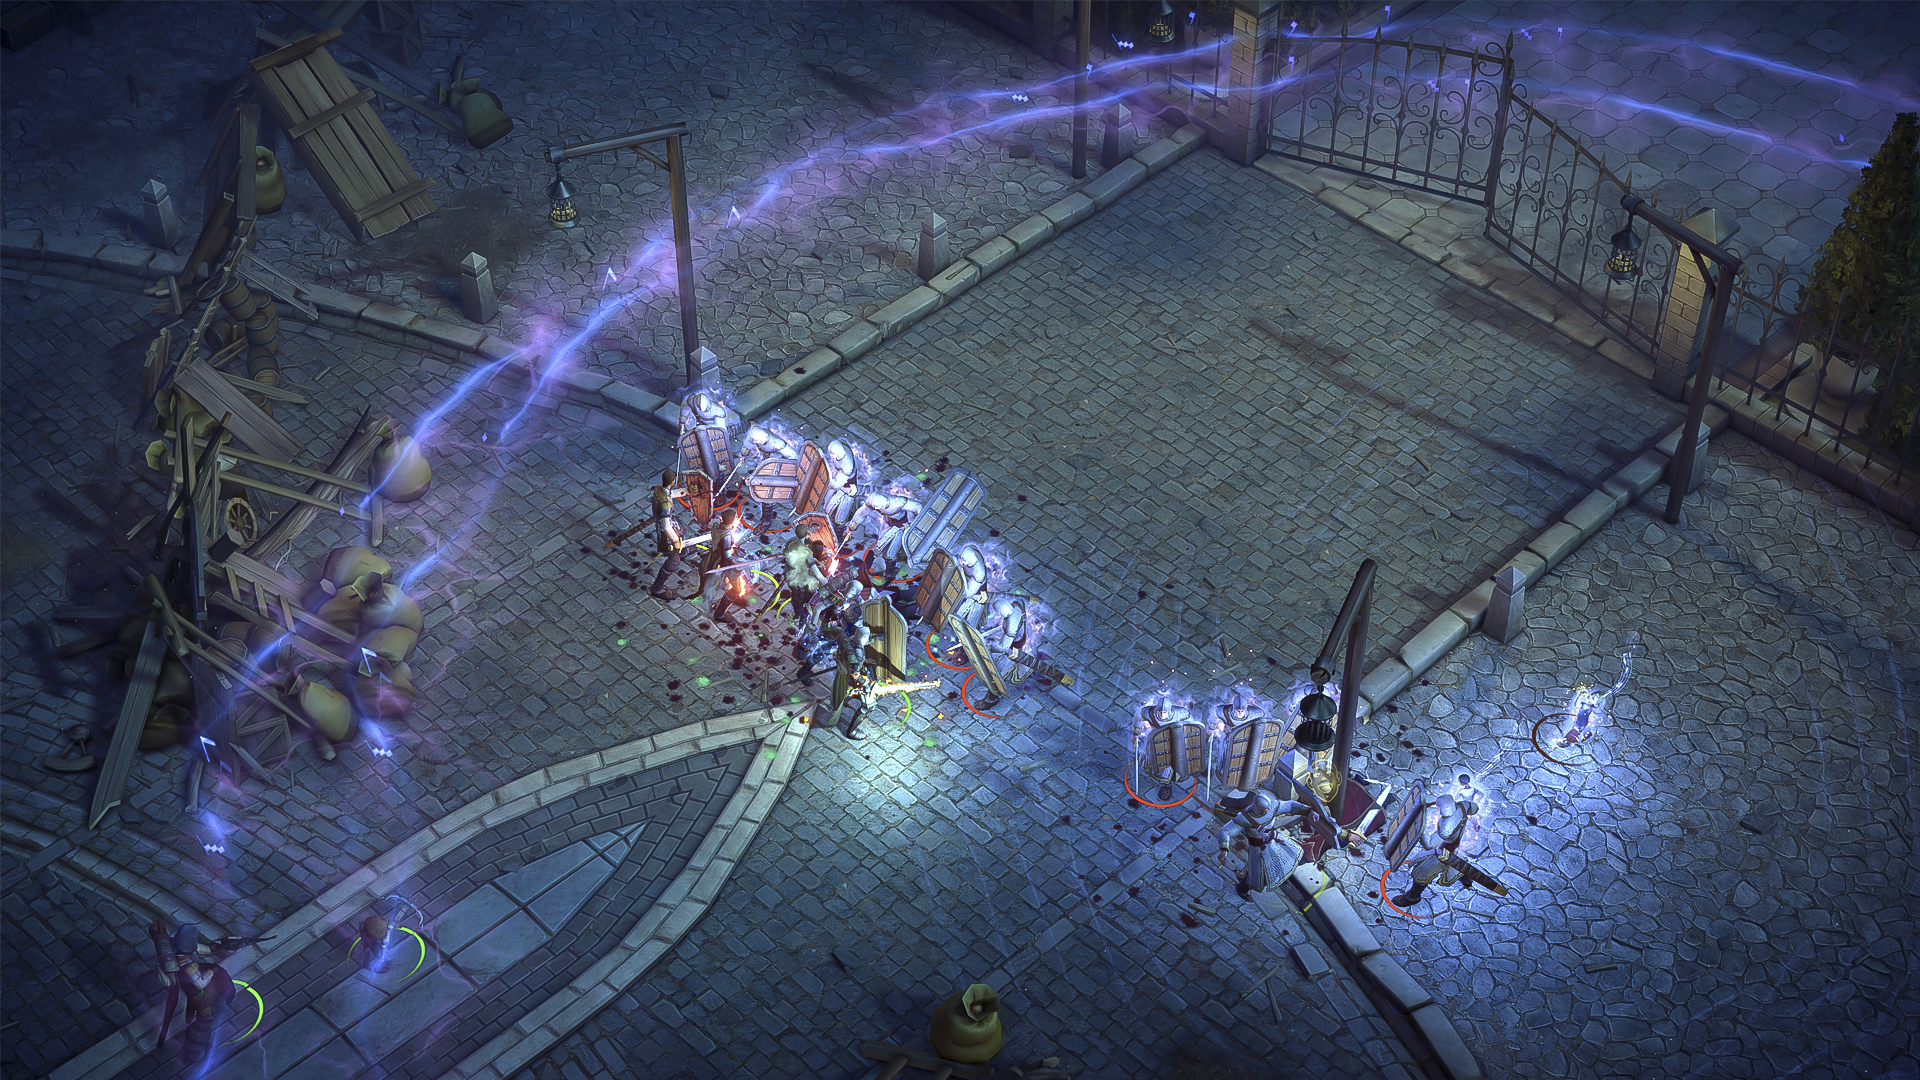 Pathfinder: Kingmaker for PC Reviews - OpenCritic